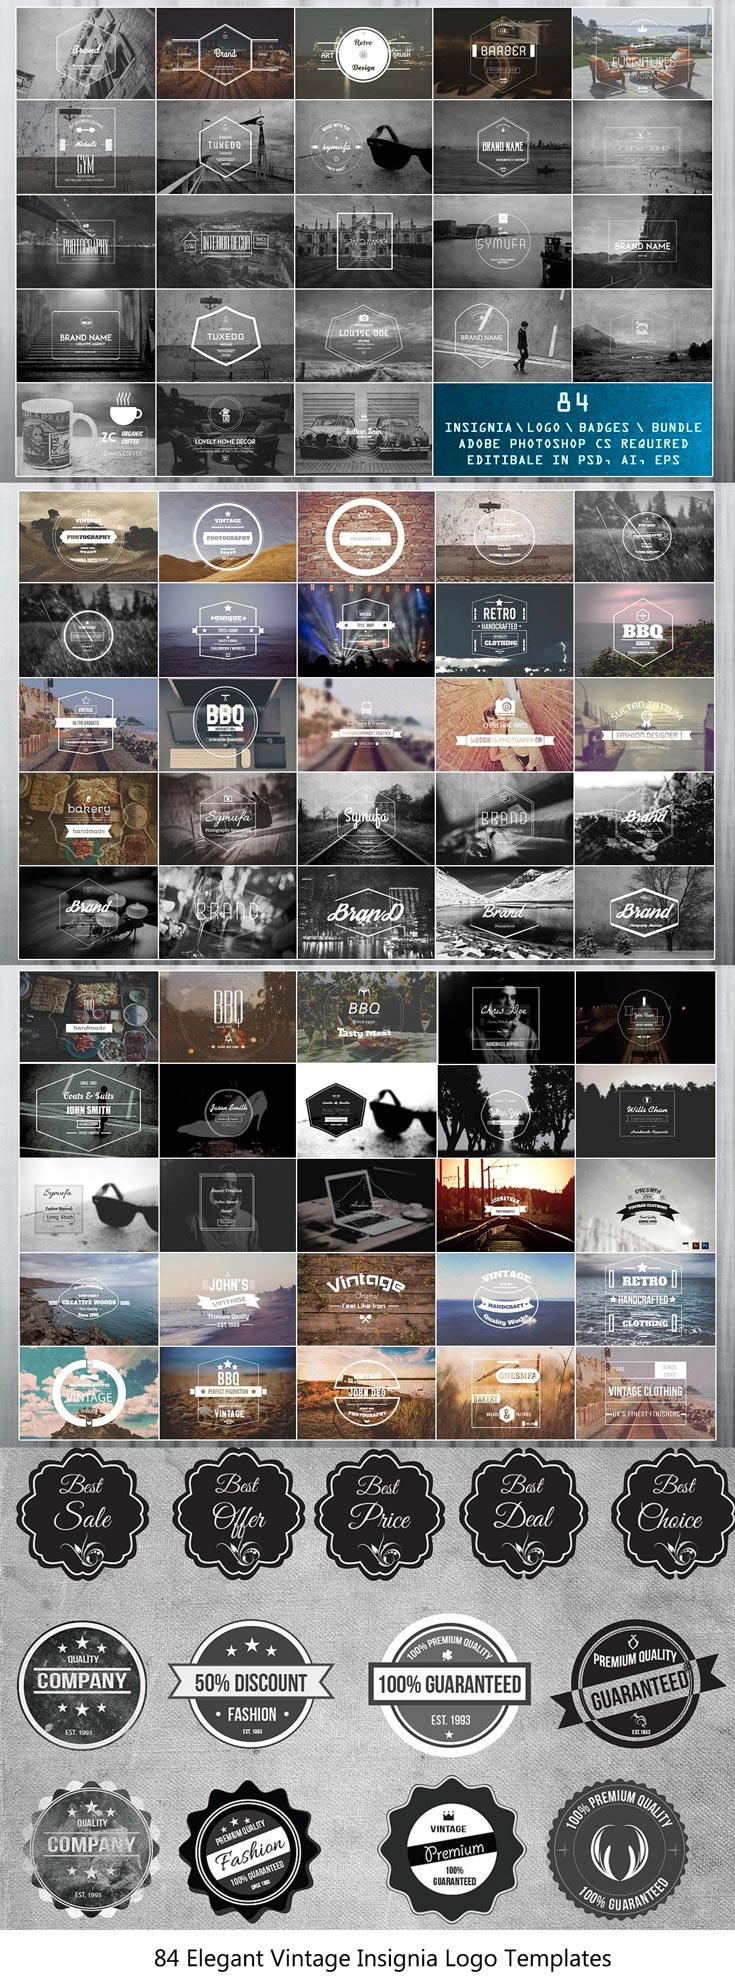 Free Elegant #Vintage #Insignia #Logo #Templates is a collection of premium blog, fashion, magazine style logo templates. Including 84 carefully designed vintage.